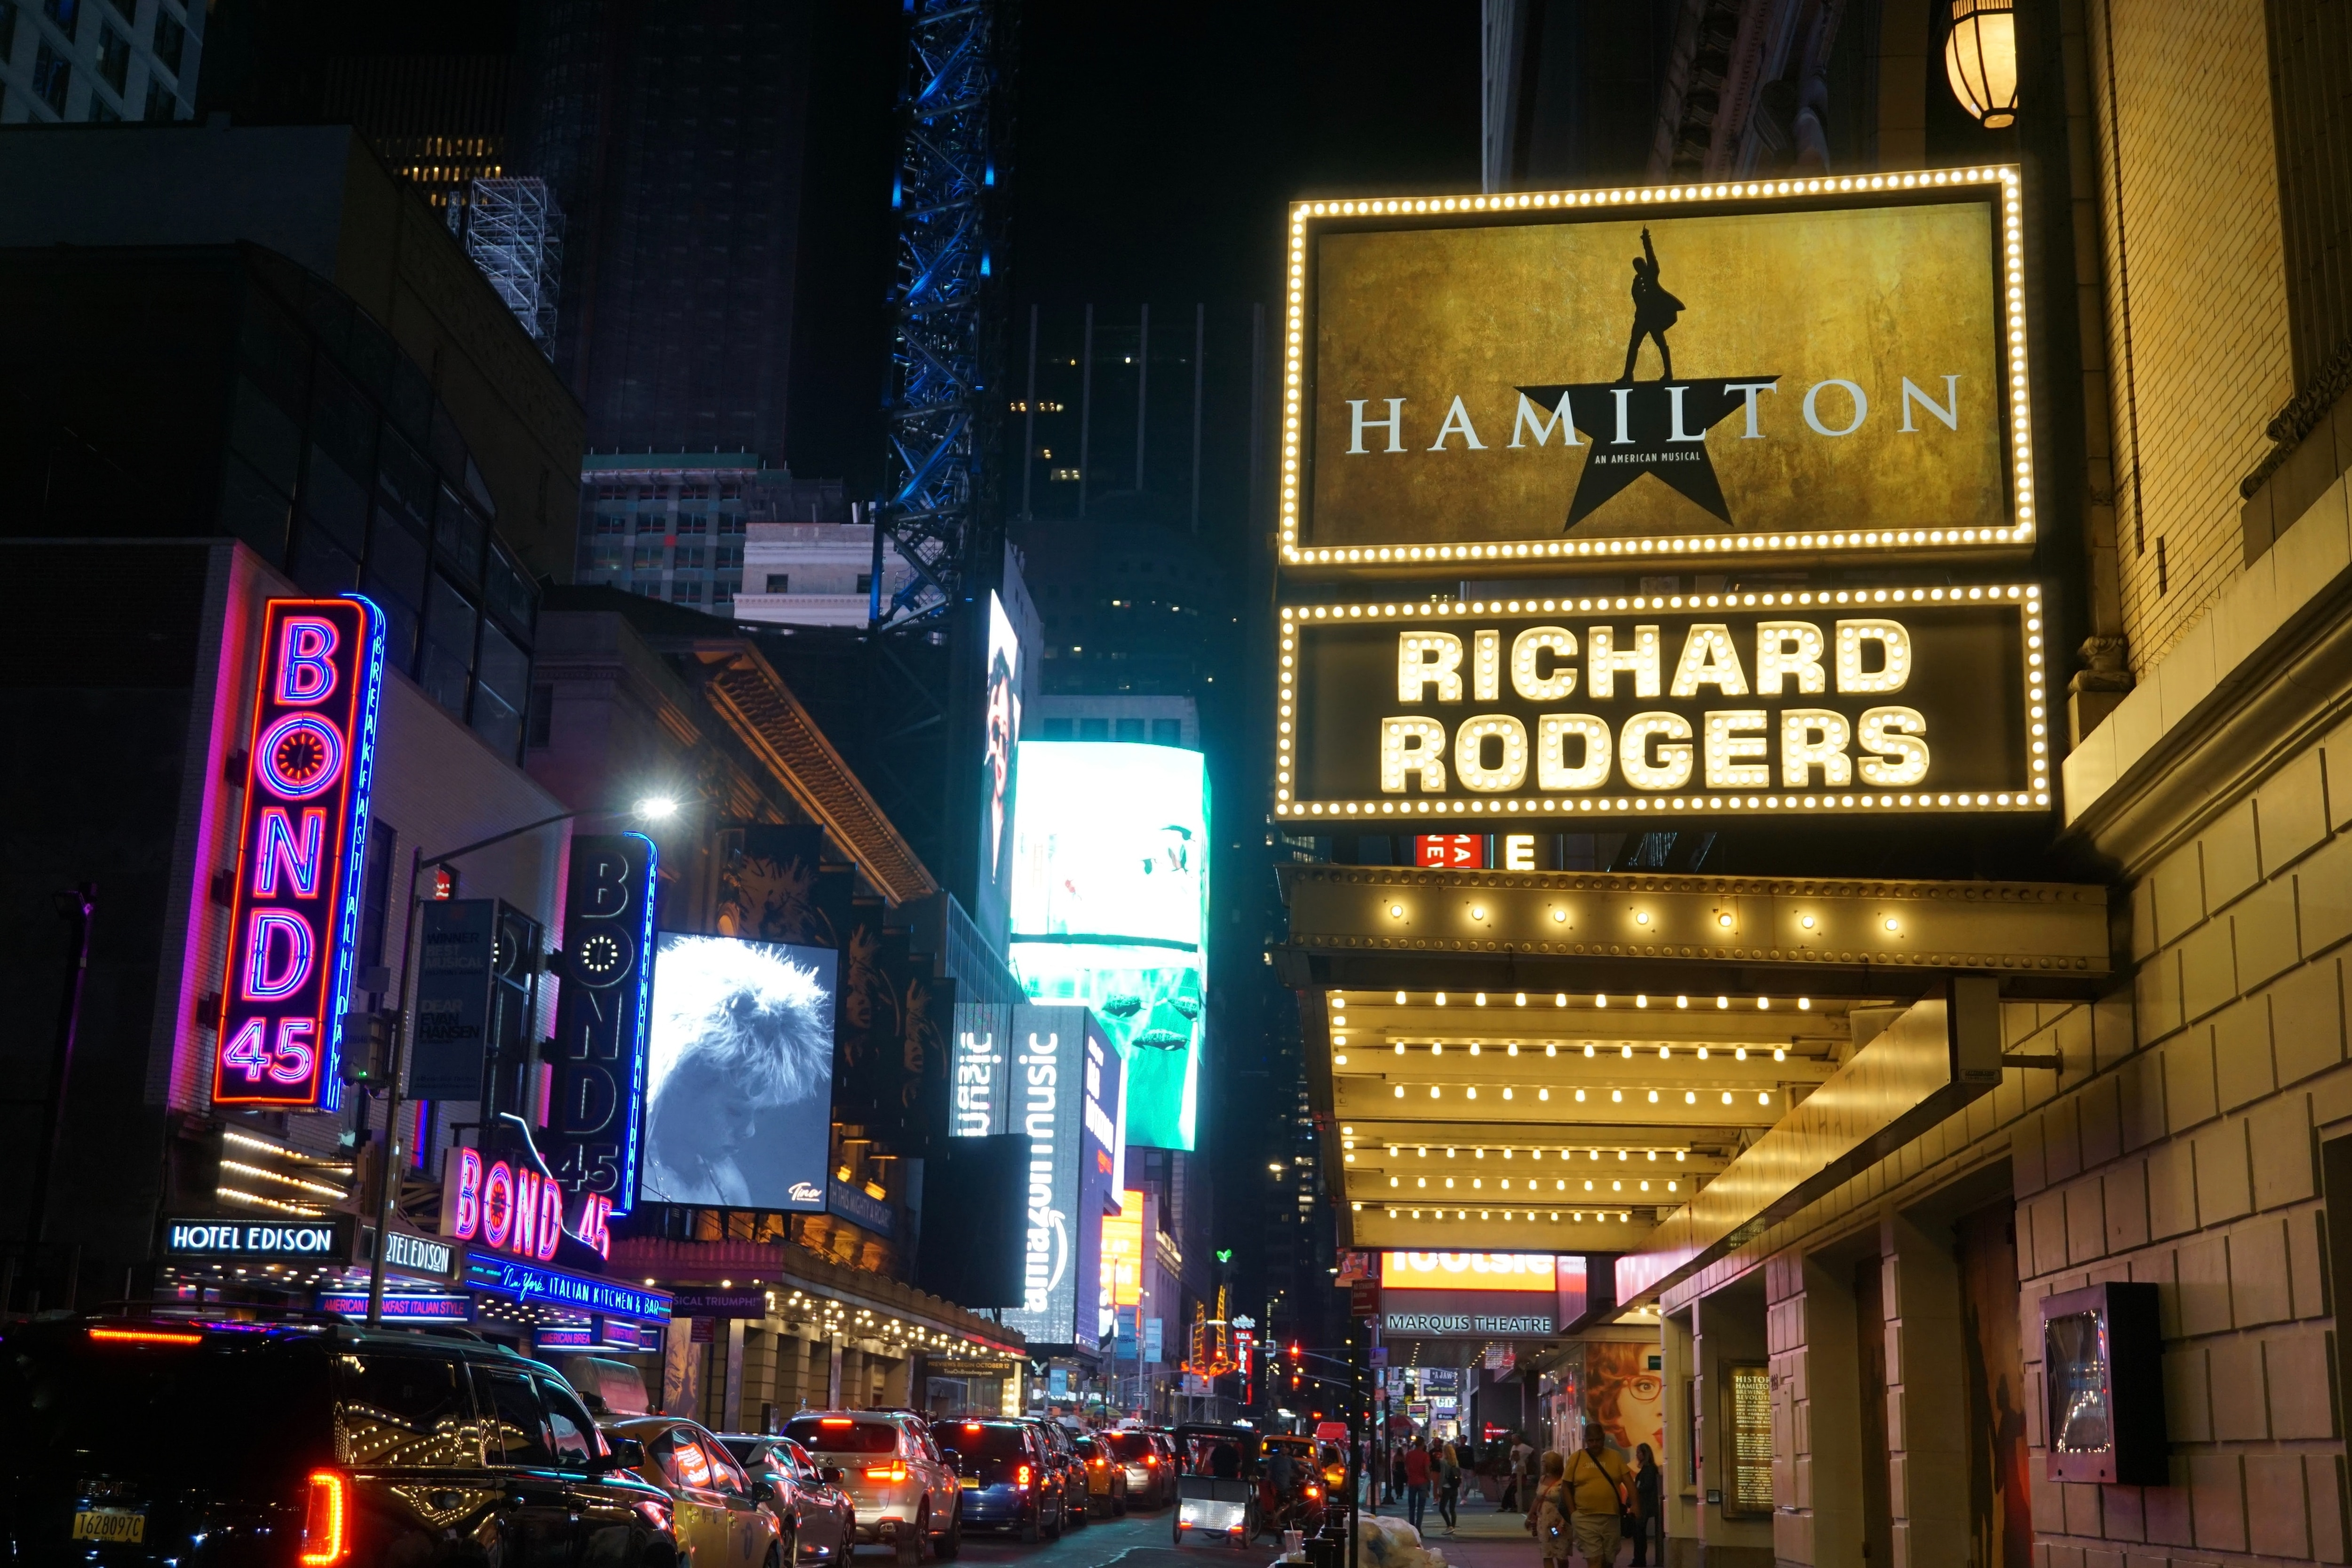 The Richard Rodgers Theatre on 46th Street